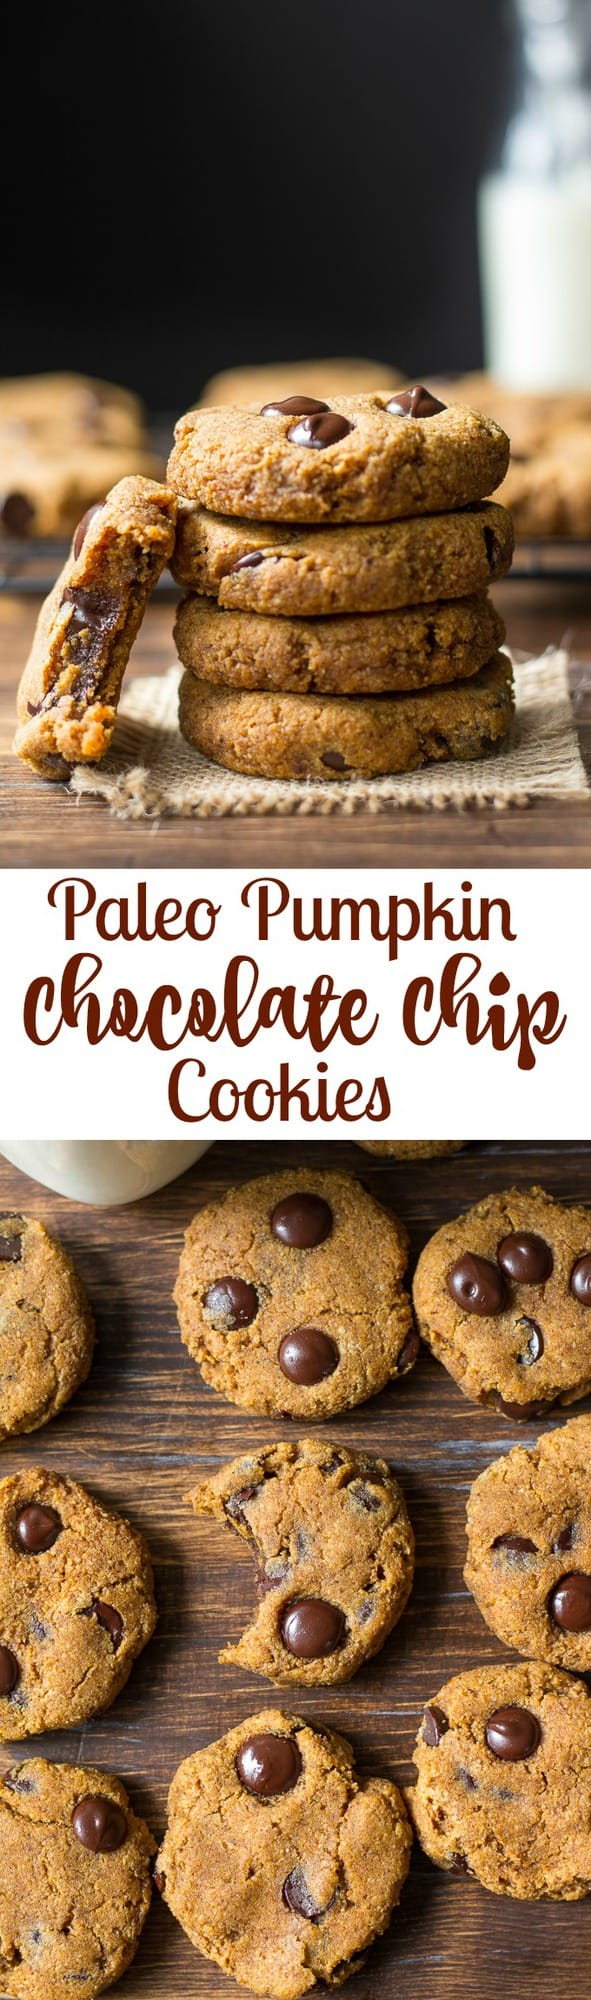 Soft and Chewy Paleo Pumpkin Chocolate Chip Cookies with a hint of warm cinnamon and pumpkin pie spice. Gluten free, grain free, dairy free, Paleo.